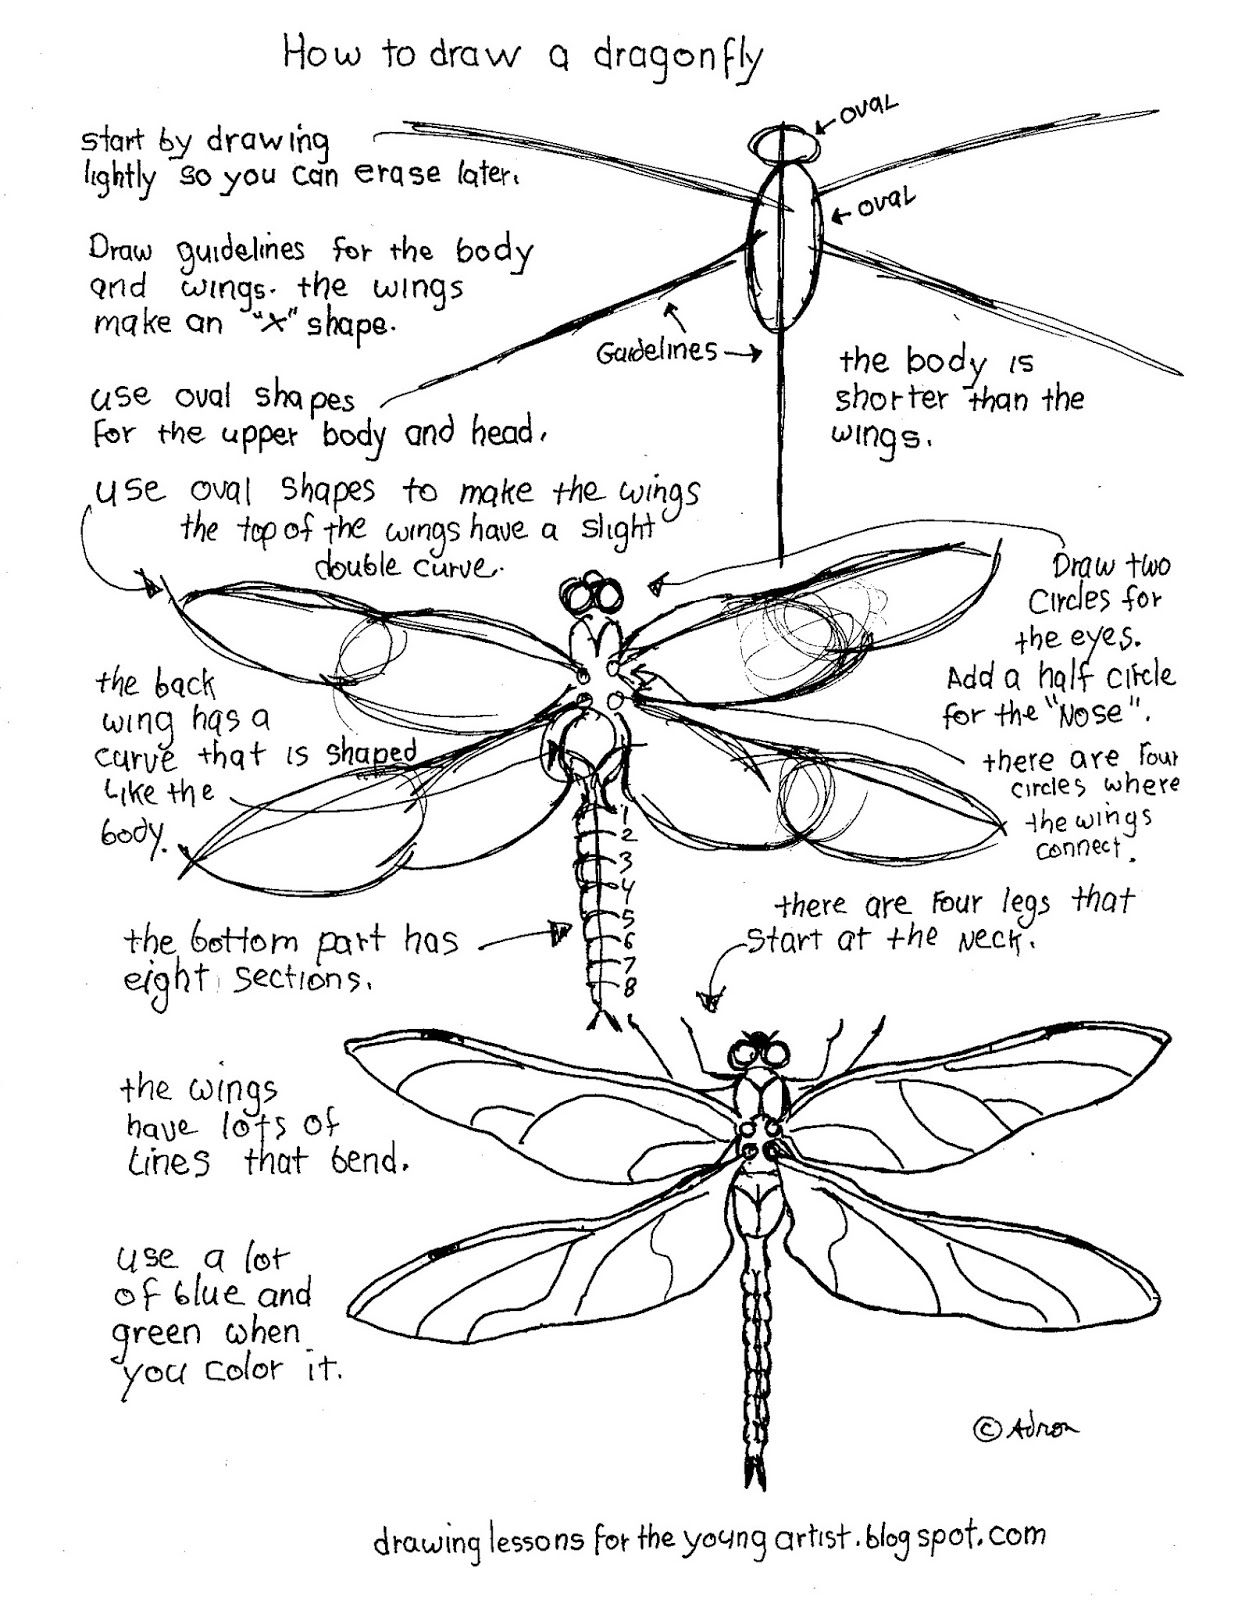 worksheet How To Draw Printable Worksheets how to draw worksheets for the young artist printable a dragonfly worksheet